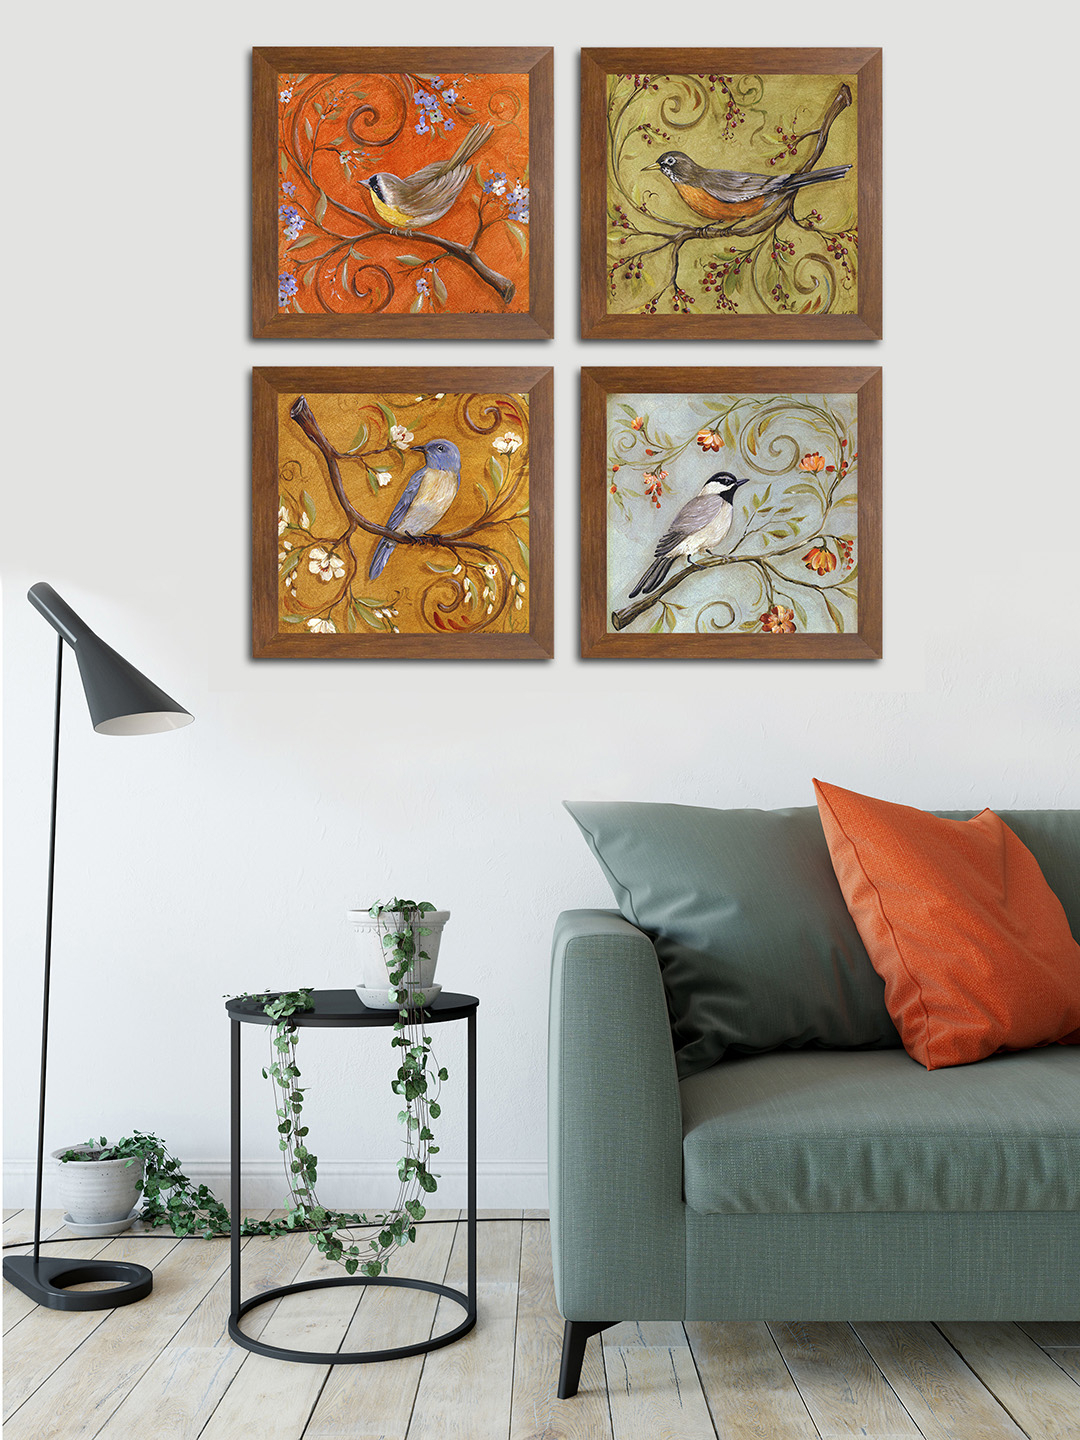 Buy Art Street Multicoloured Birds & Animals Printed Set Of 4 Wall With Regard To Most Current 3 Piece Capri Butterfly Wall Decor Sets (View 9 of 20)